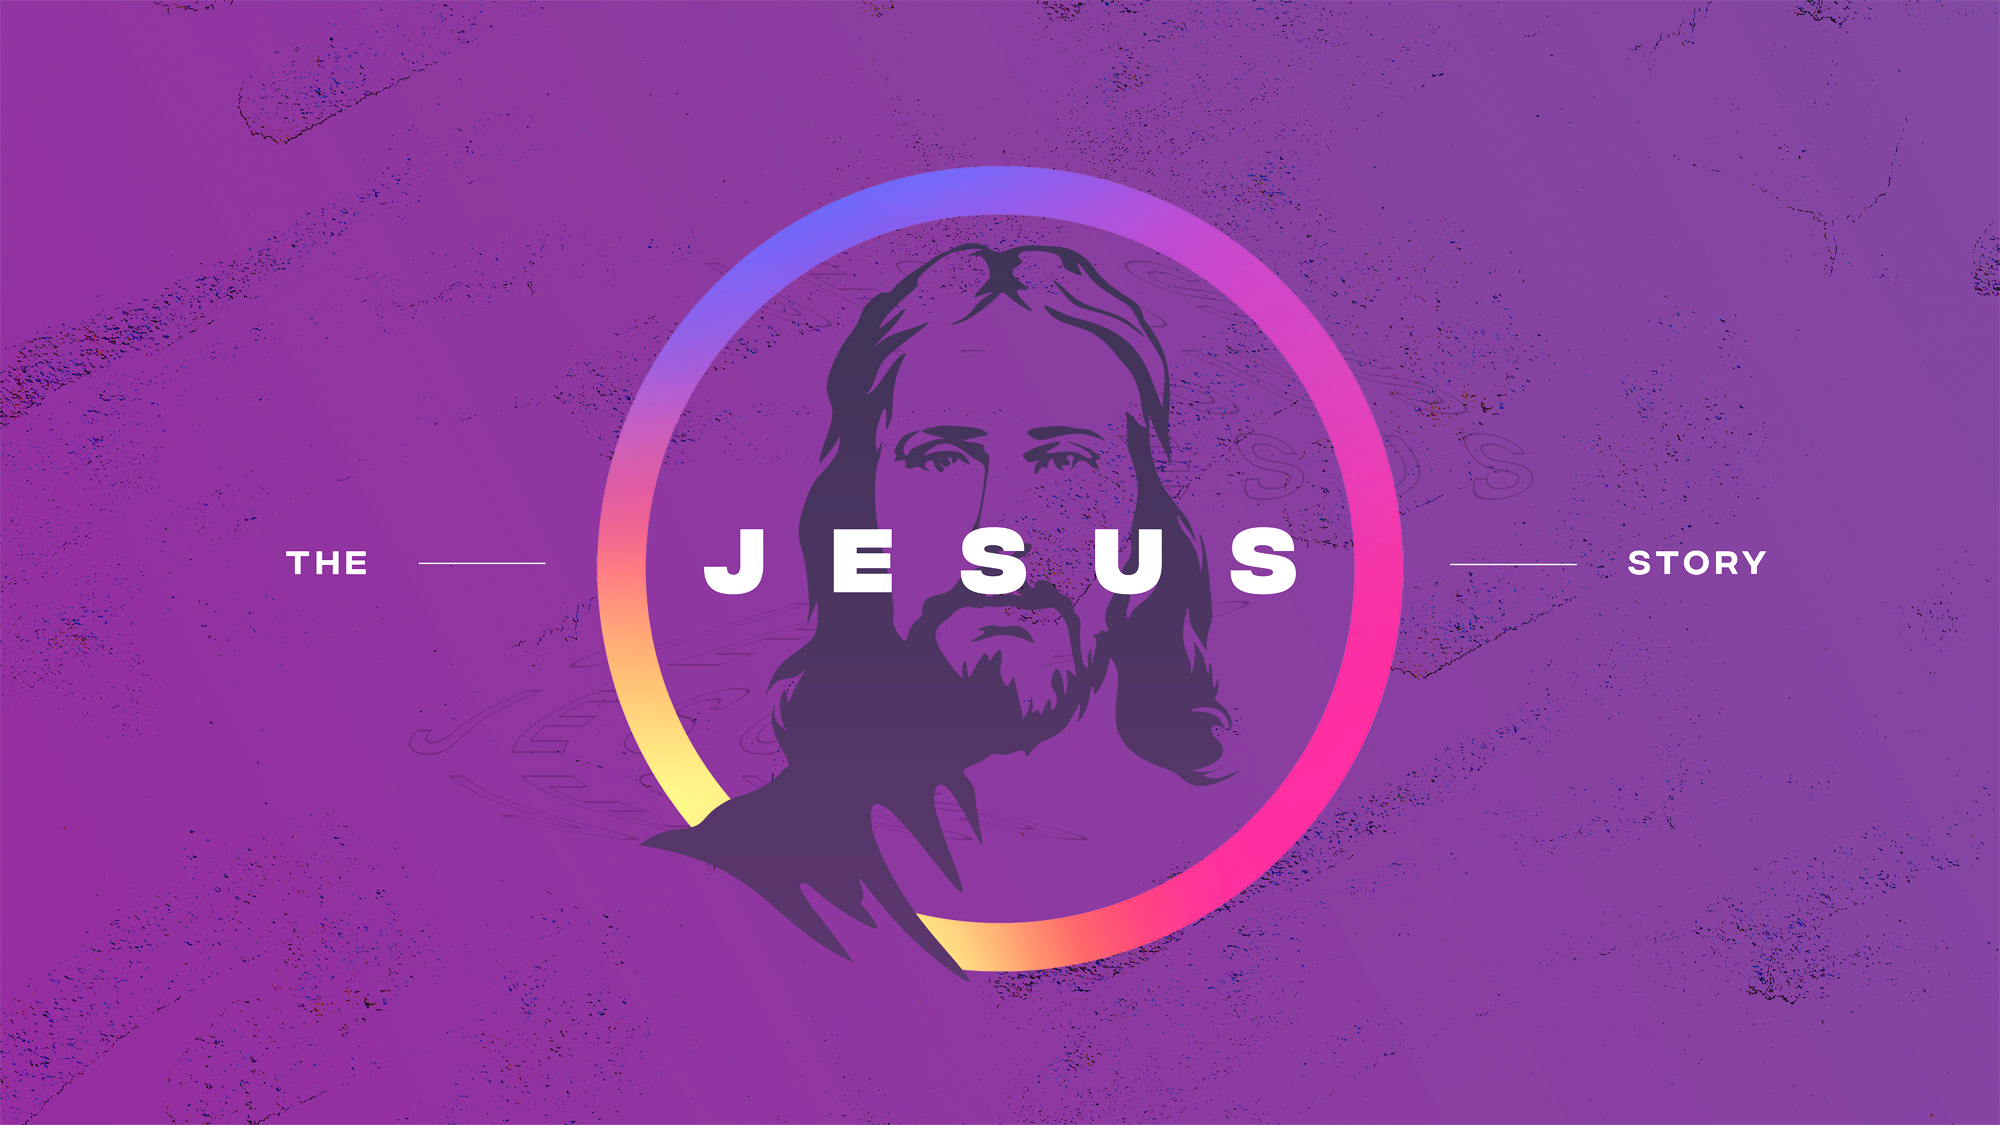 The JESUS Story: A Sinner Stands, A Savior Stoops